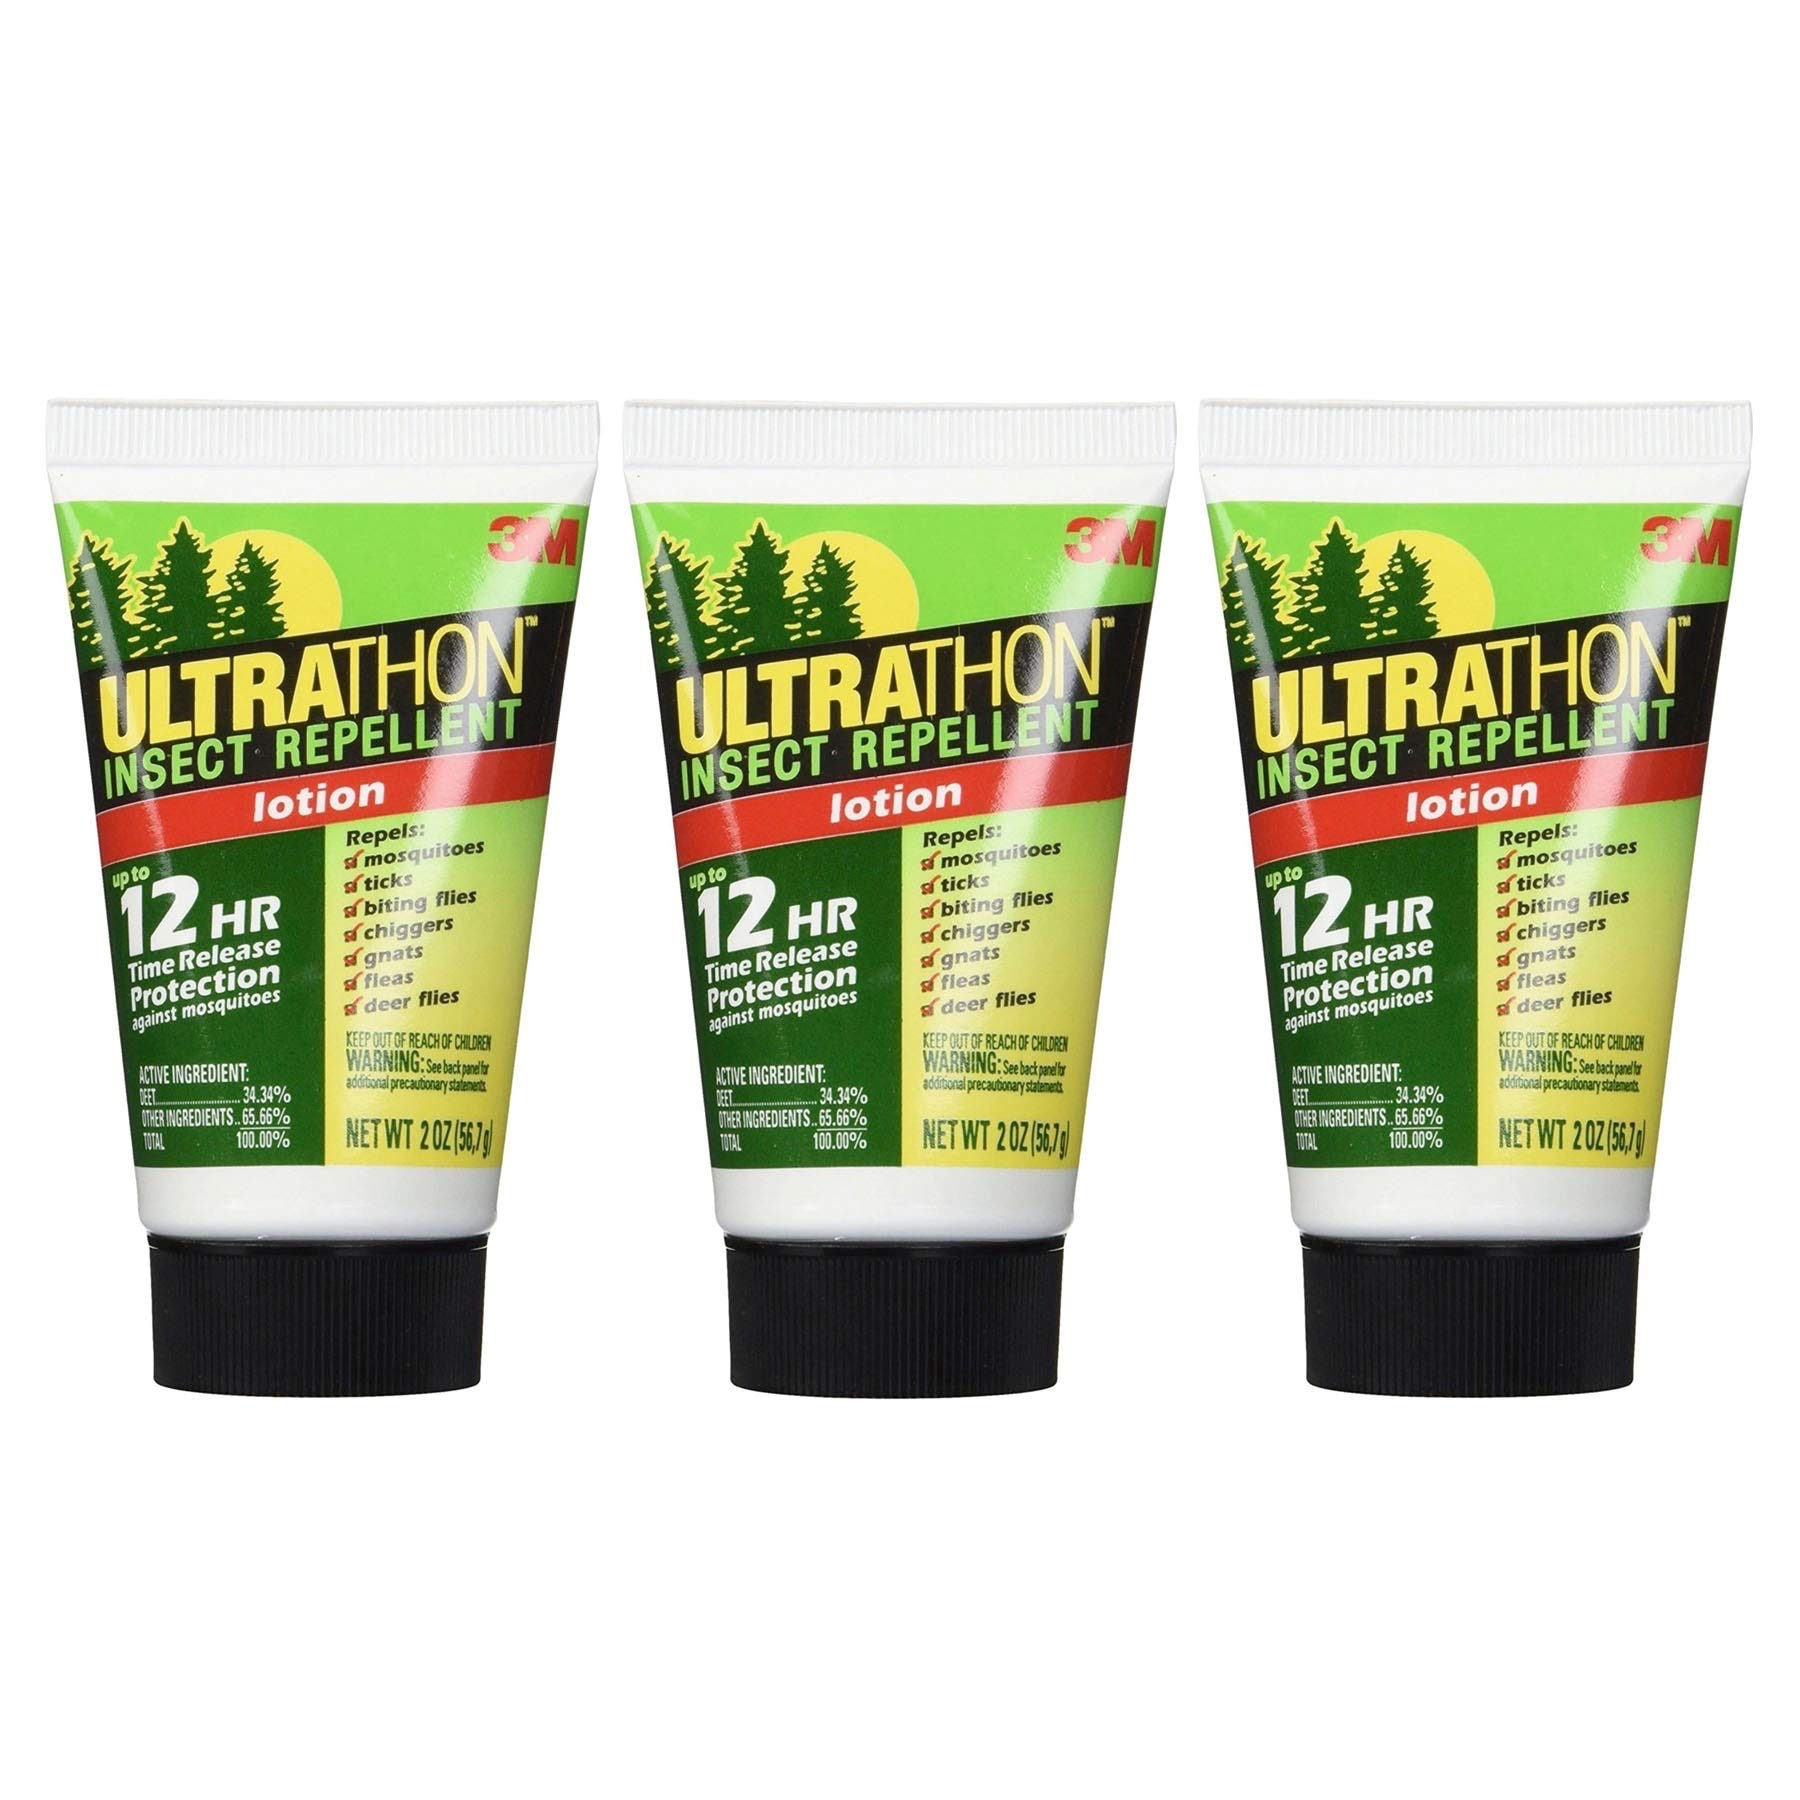 3M Ultrathon Insect Repellent Lotion, 2-Ounce (3-Tubes)